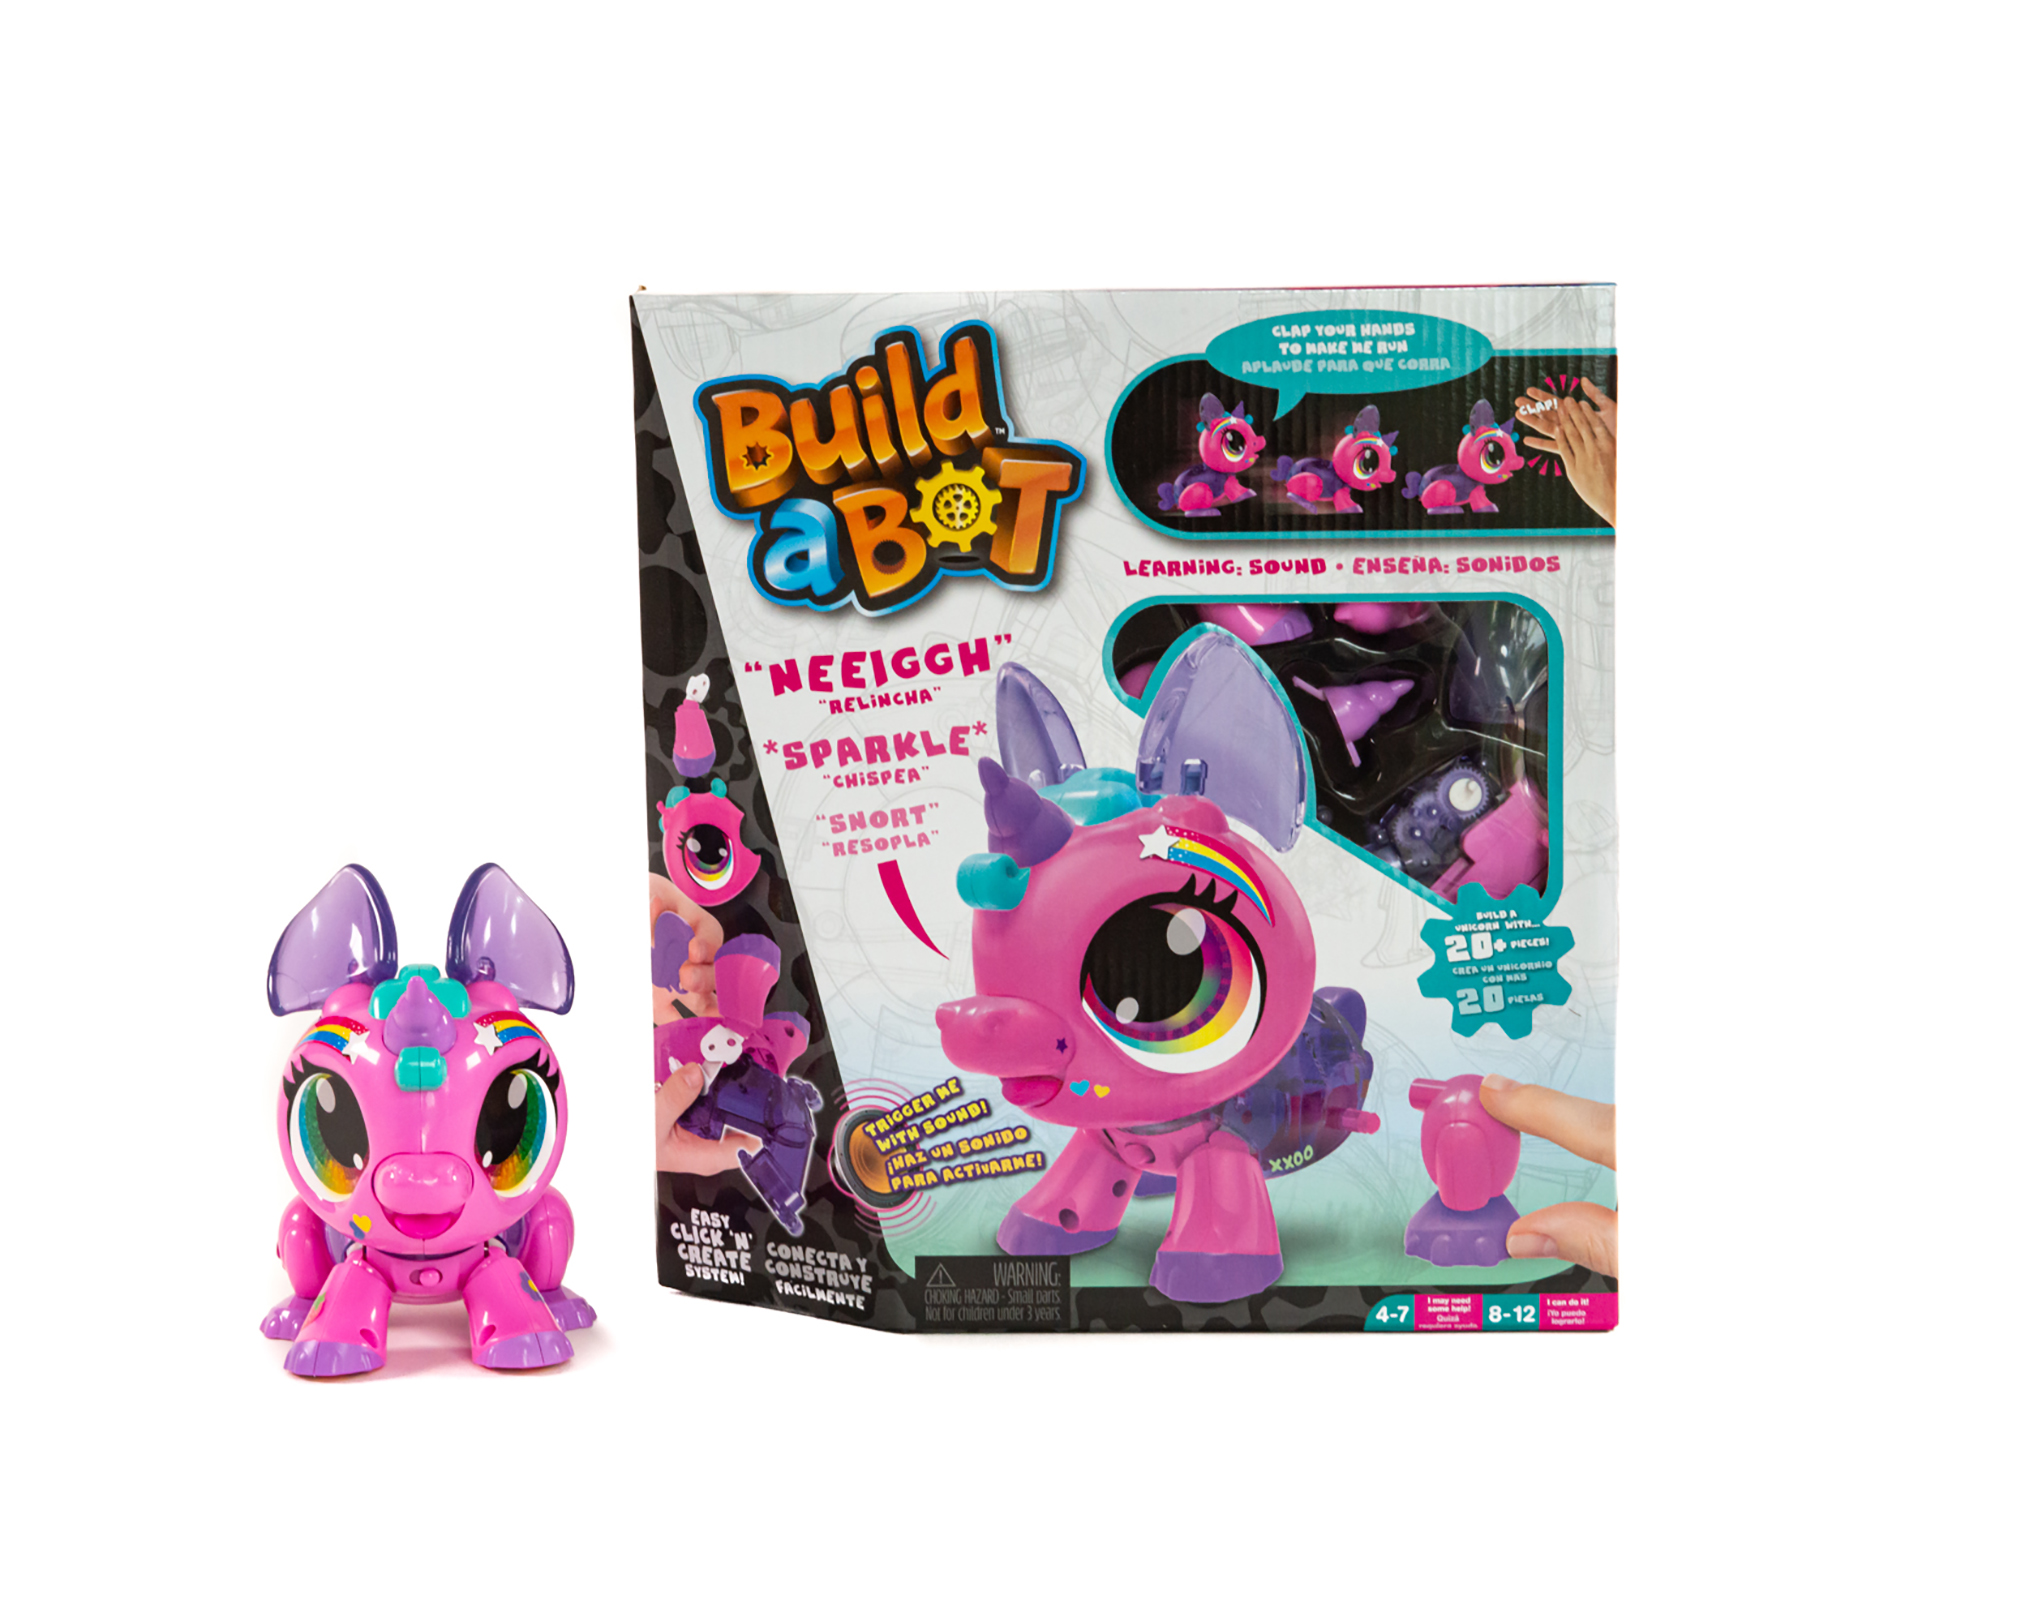 Image 3 Unicorn - Package with Bot 1 - hi-res.jpg